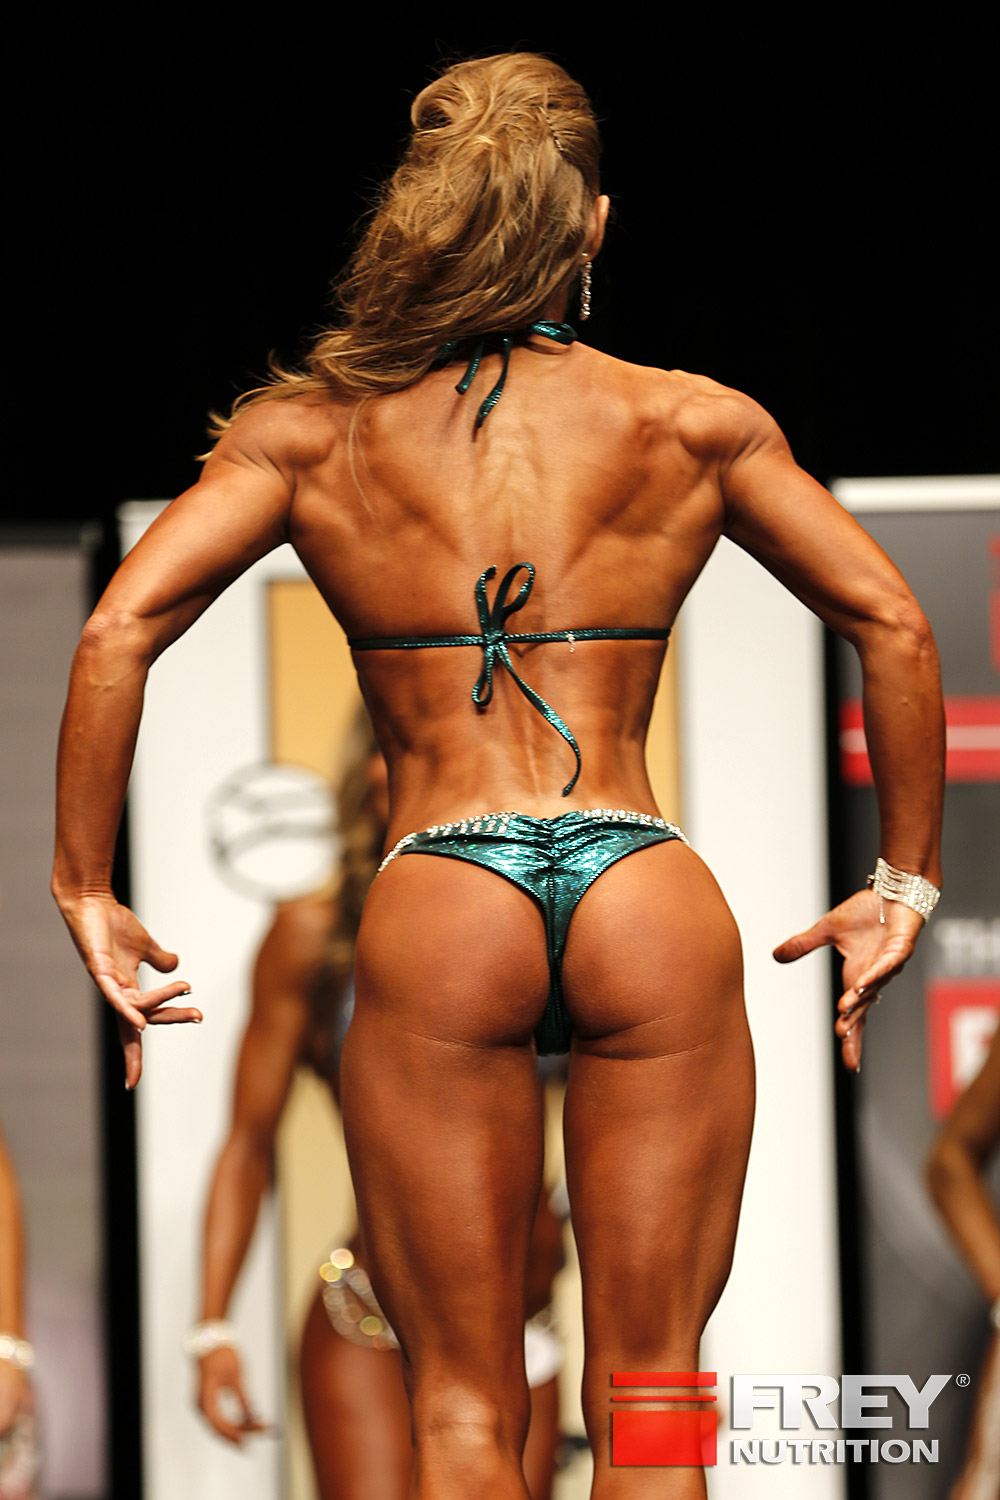 Julia Bodor - Line-Up from the back